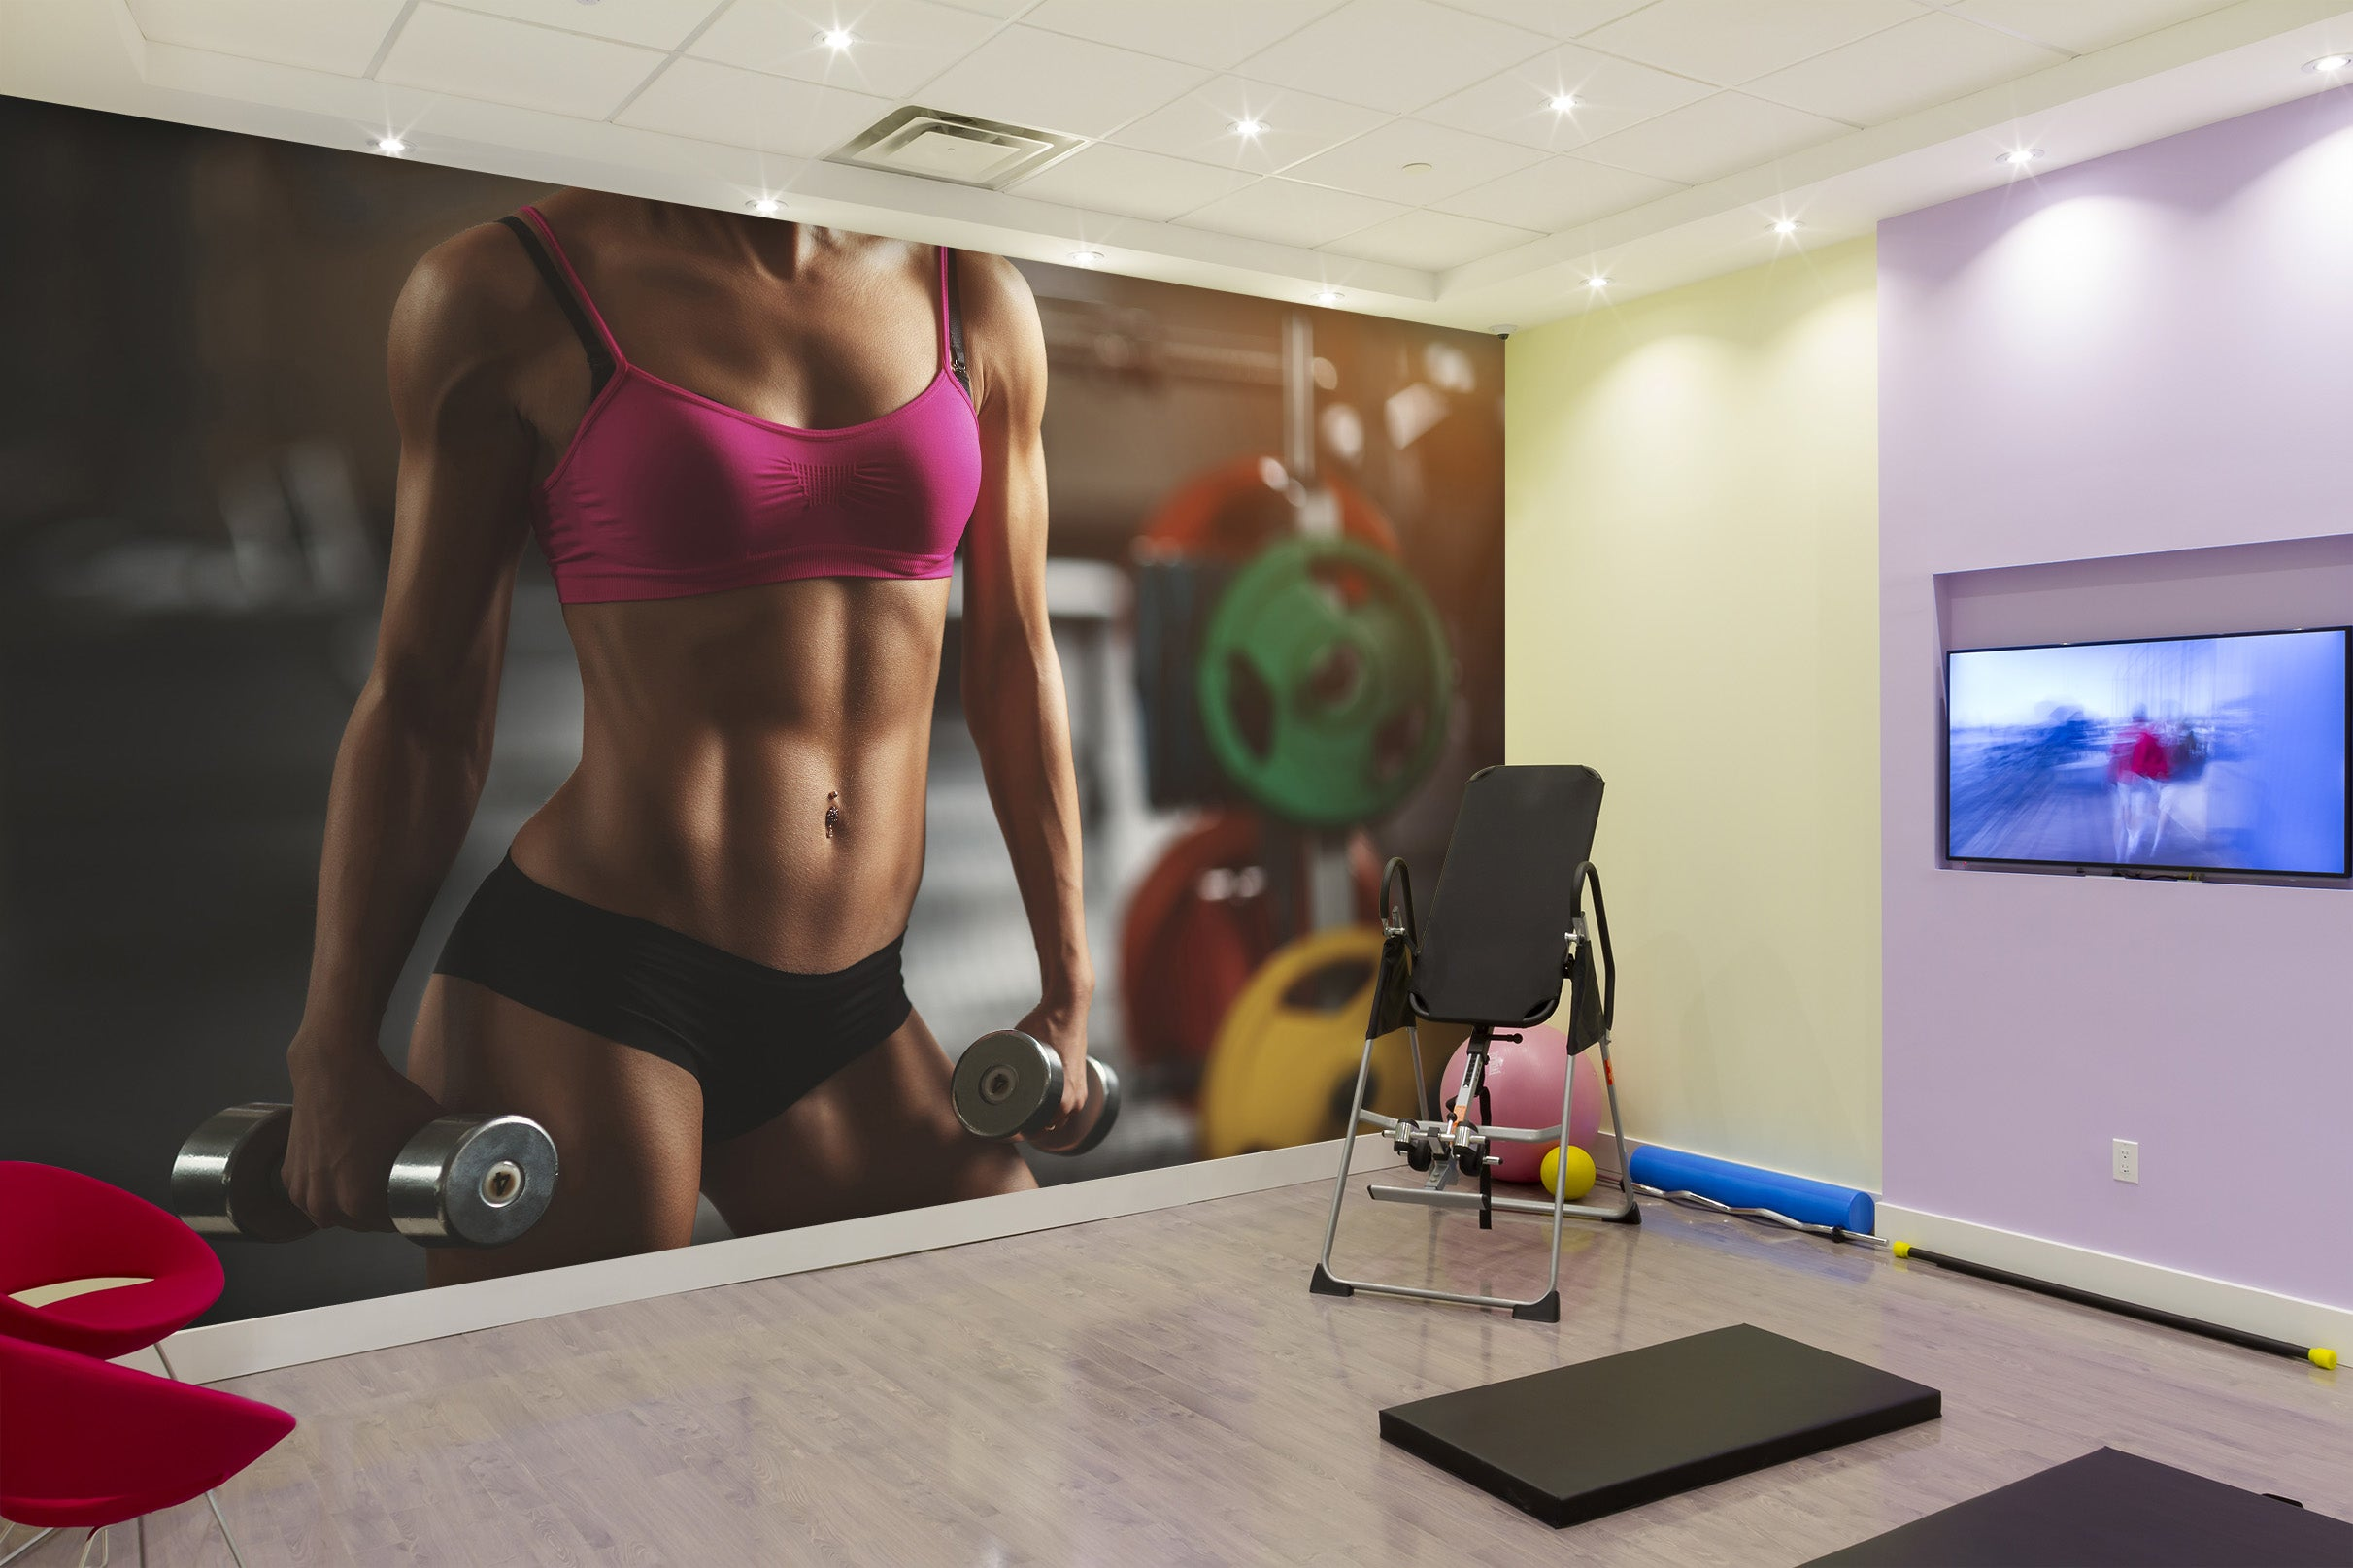 3D Girl Abs 223 Wall Murals